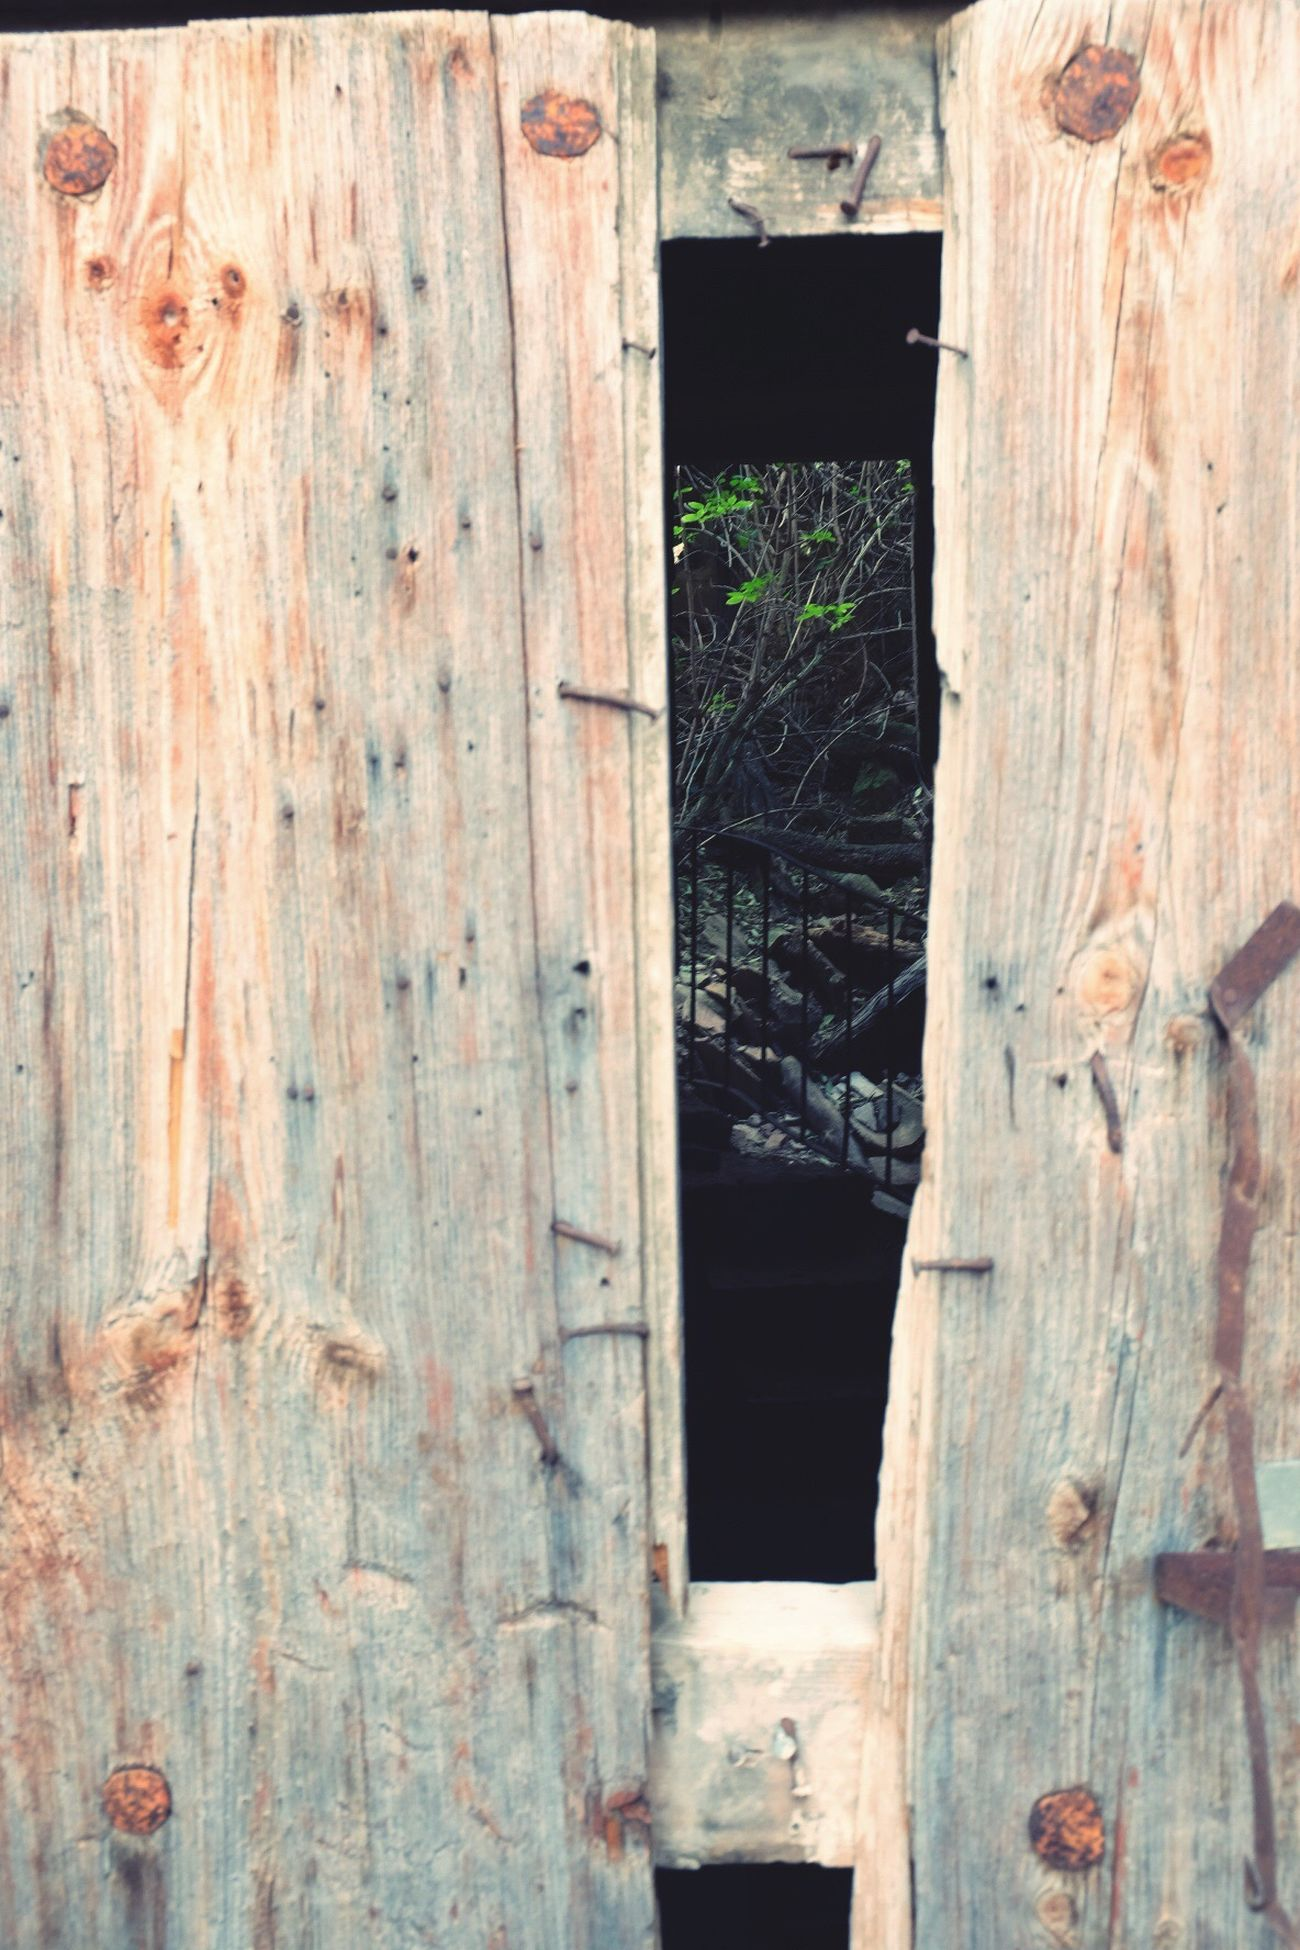 Wood - Material Architecture Tranquility Mountain EyeEm Built Structure Door Outdoors No People Plant Day Close-up